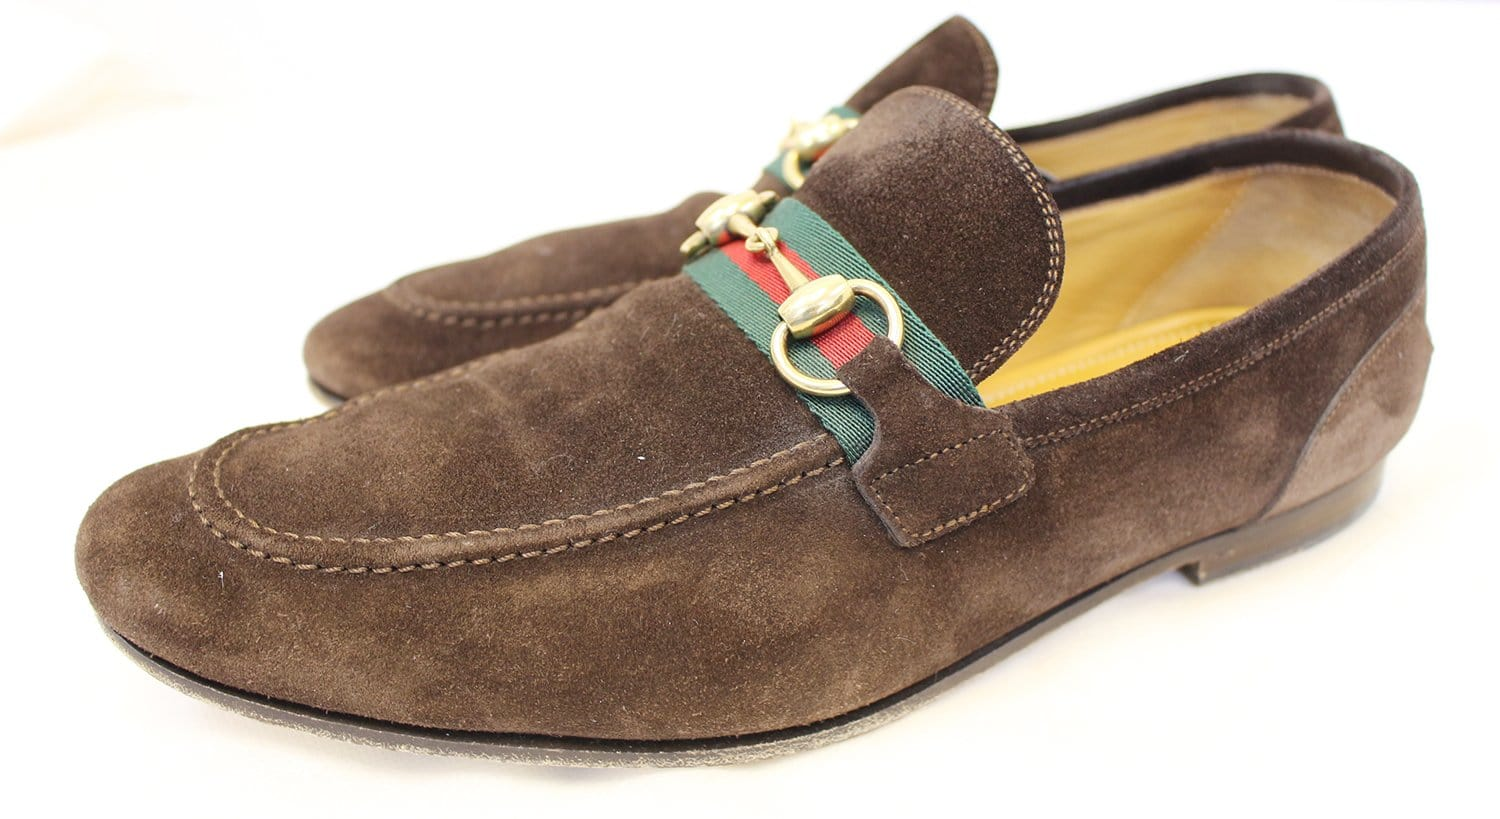 4289acb0fc1 GUCCI Men s Horsebit Suede Leather Loafer with Web Size 8